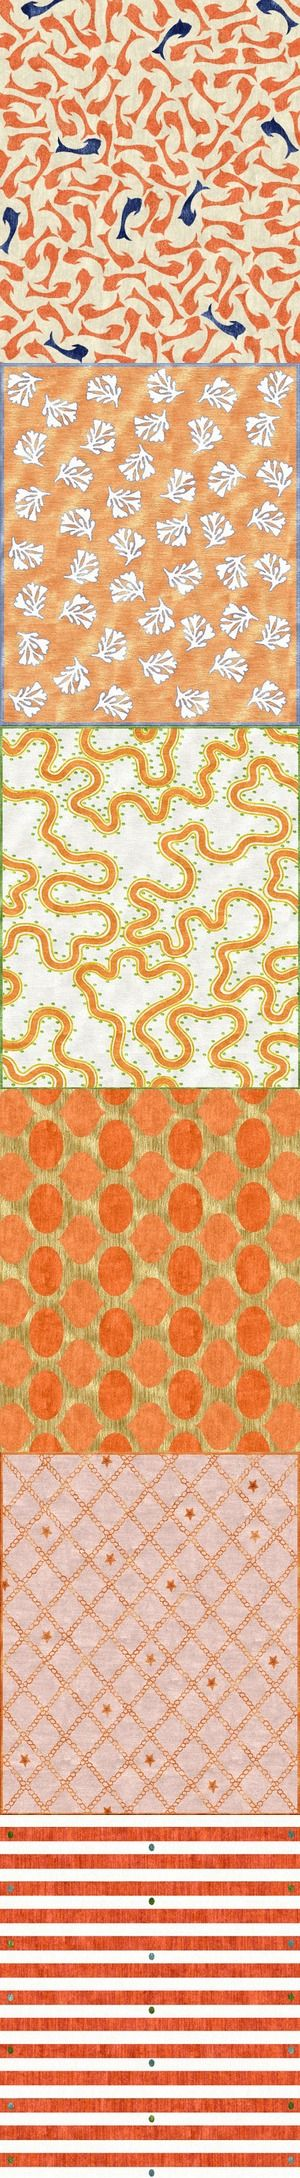 These are large rugs - have a favorite for an orange-o-phile?